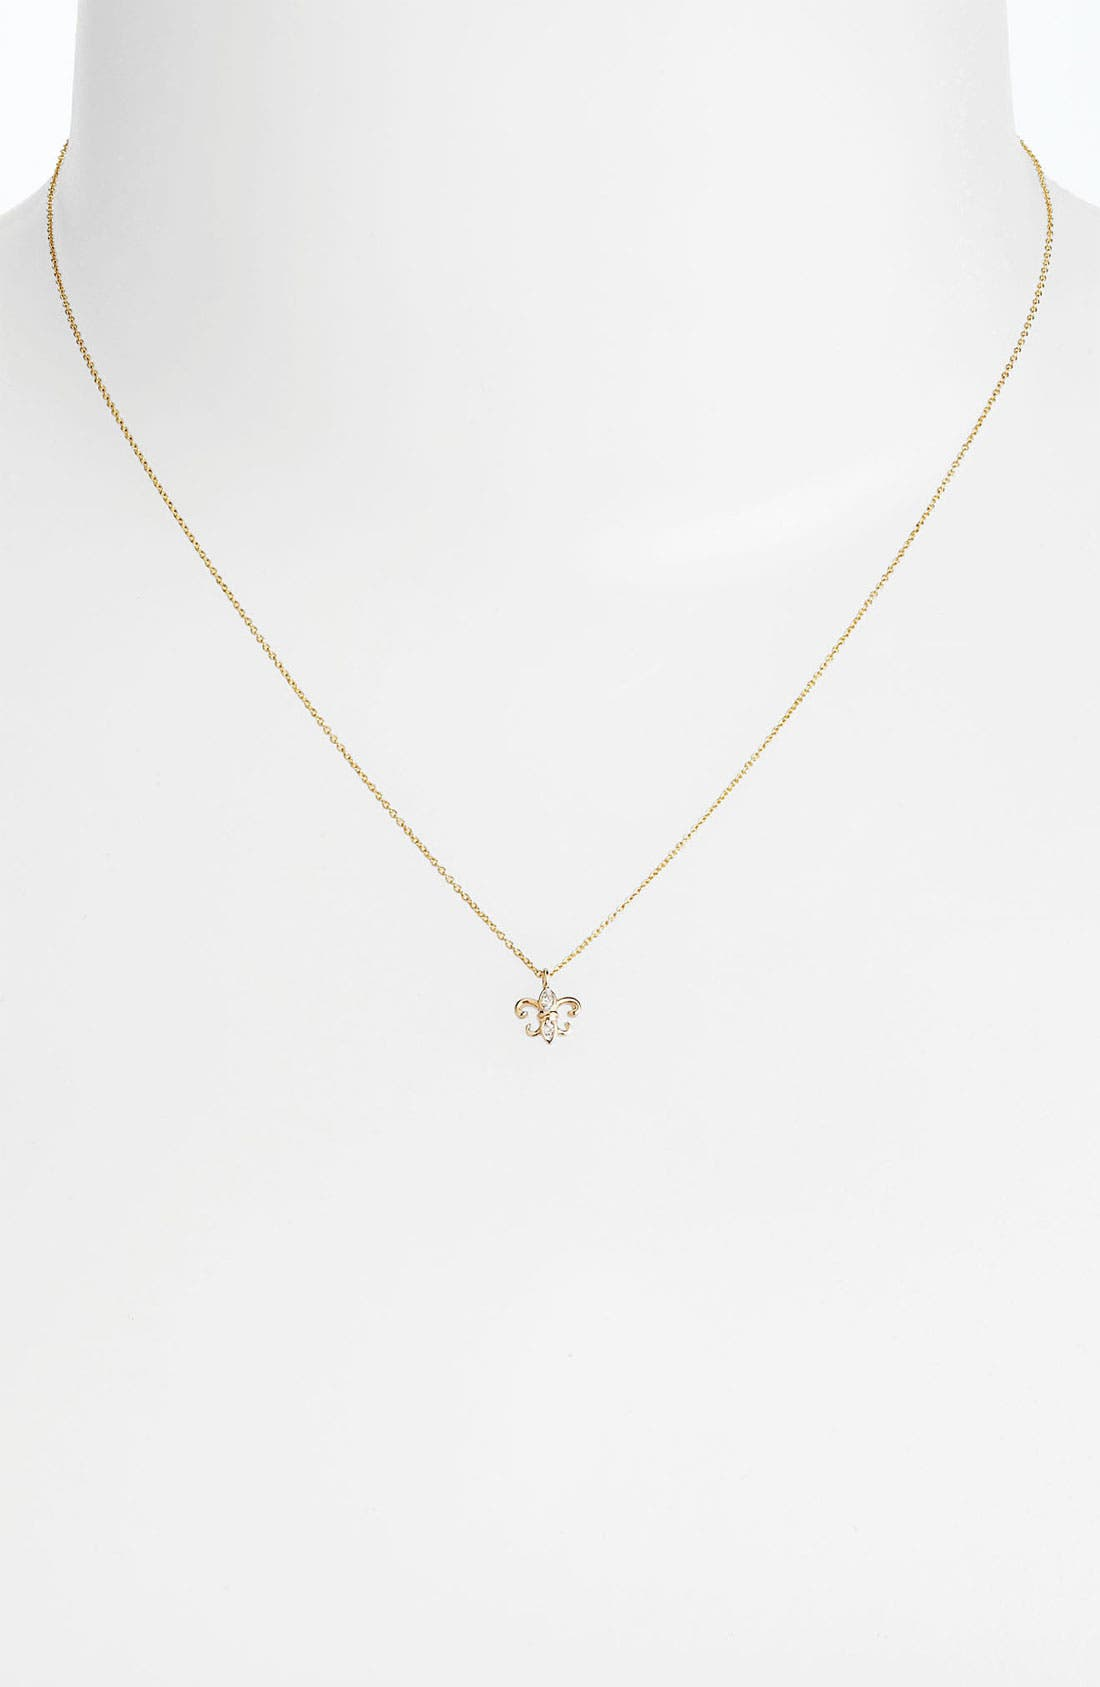 Alternate Image 1 Selected - Whitney Stern Fleur de Lis Pendant Necklace